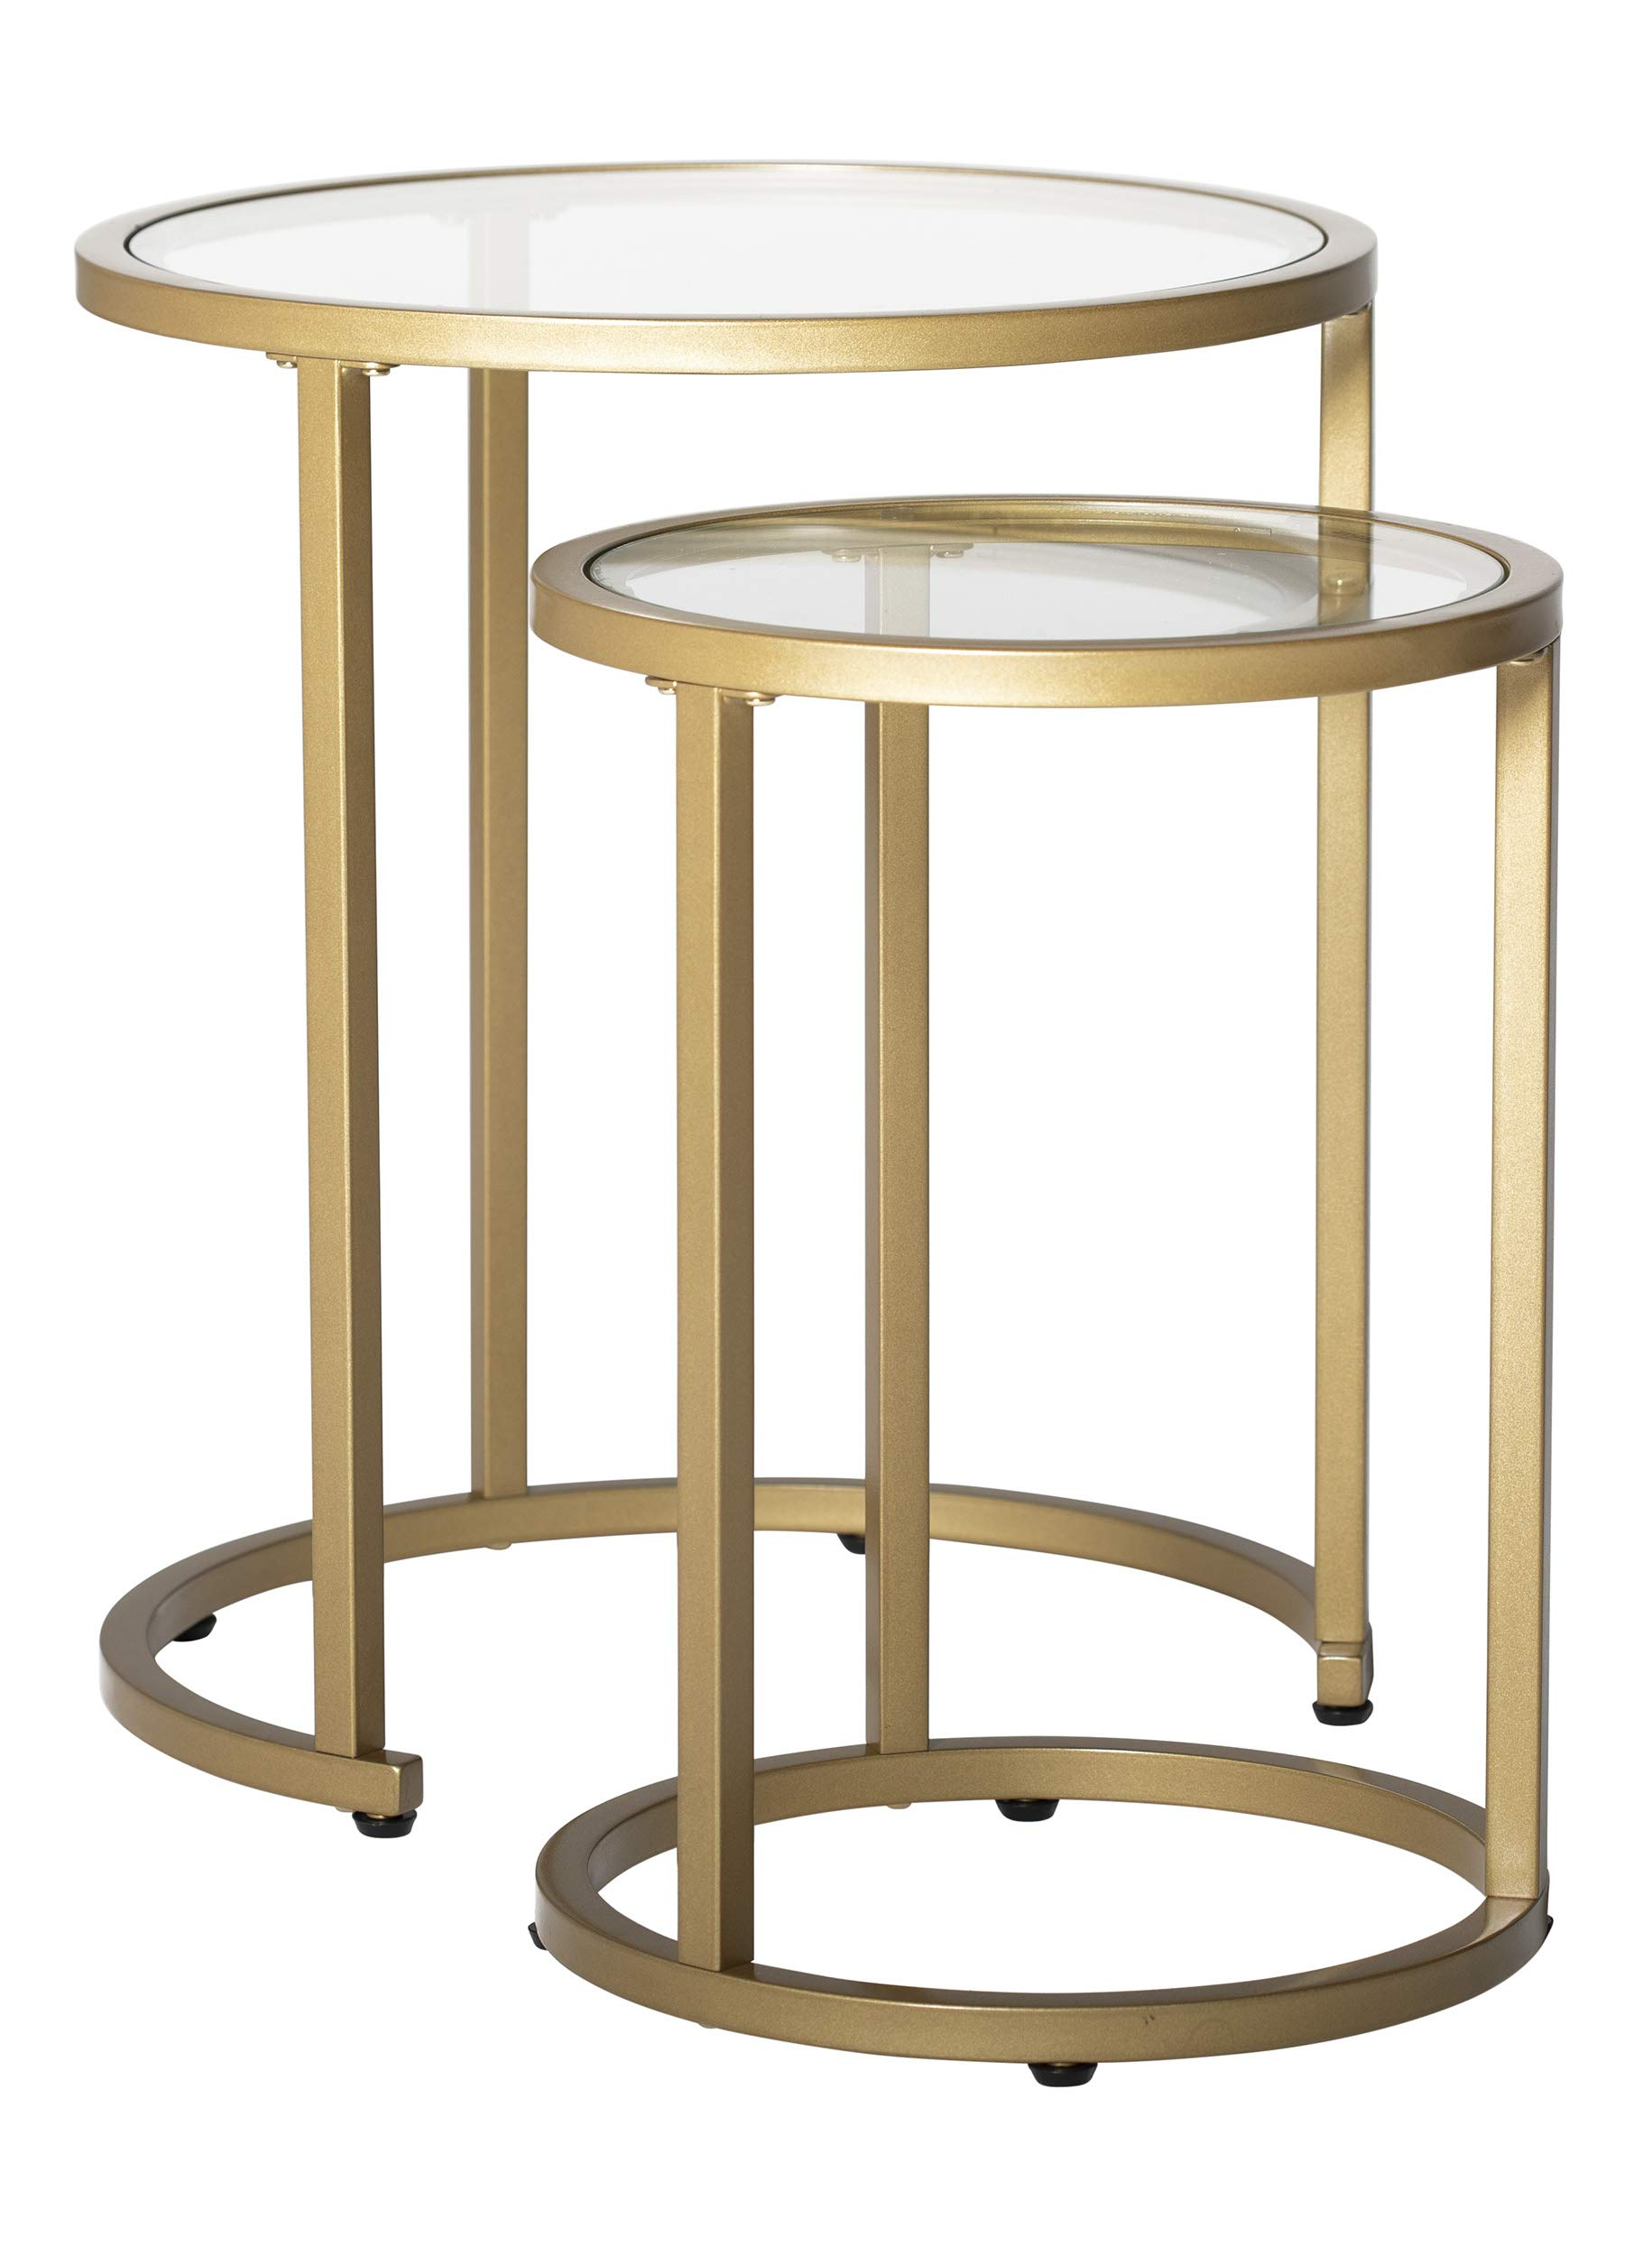 Studio Designs Home Camber Modern 20'' and 14.5'' Round Set of Nesting Tables in Gold/Clear Glass by Studio Designs Home